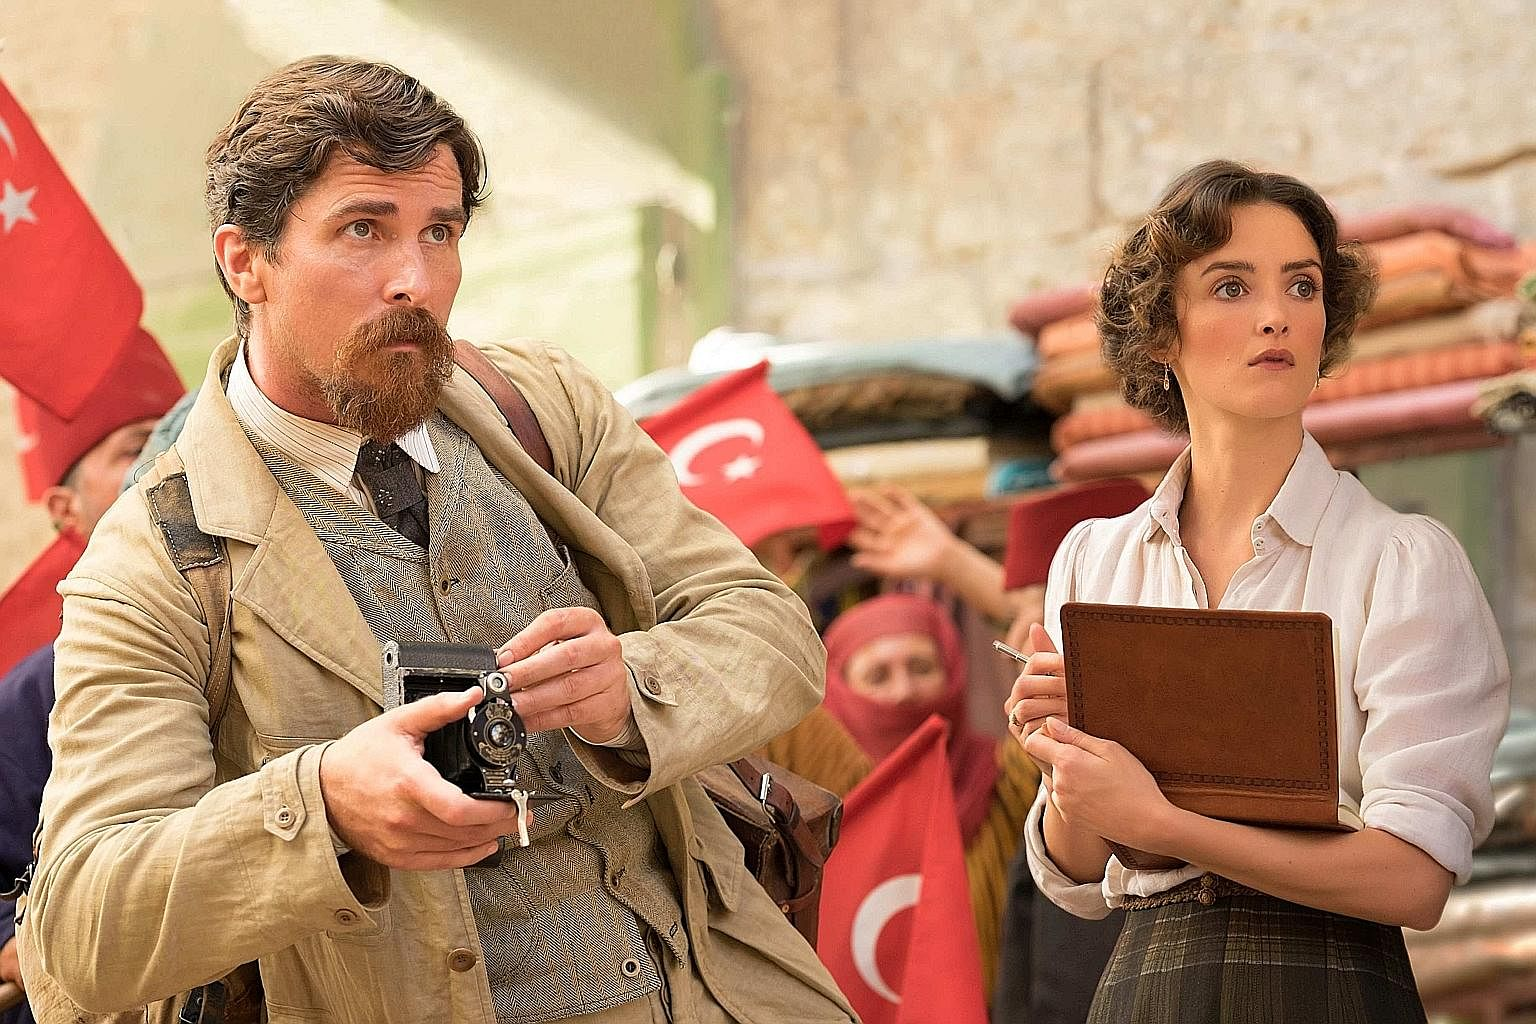 Christian Bale and Charlotte Le Bon (both above) in The Promise.